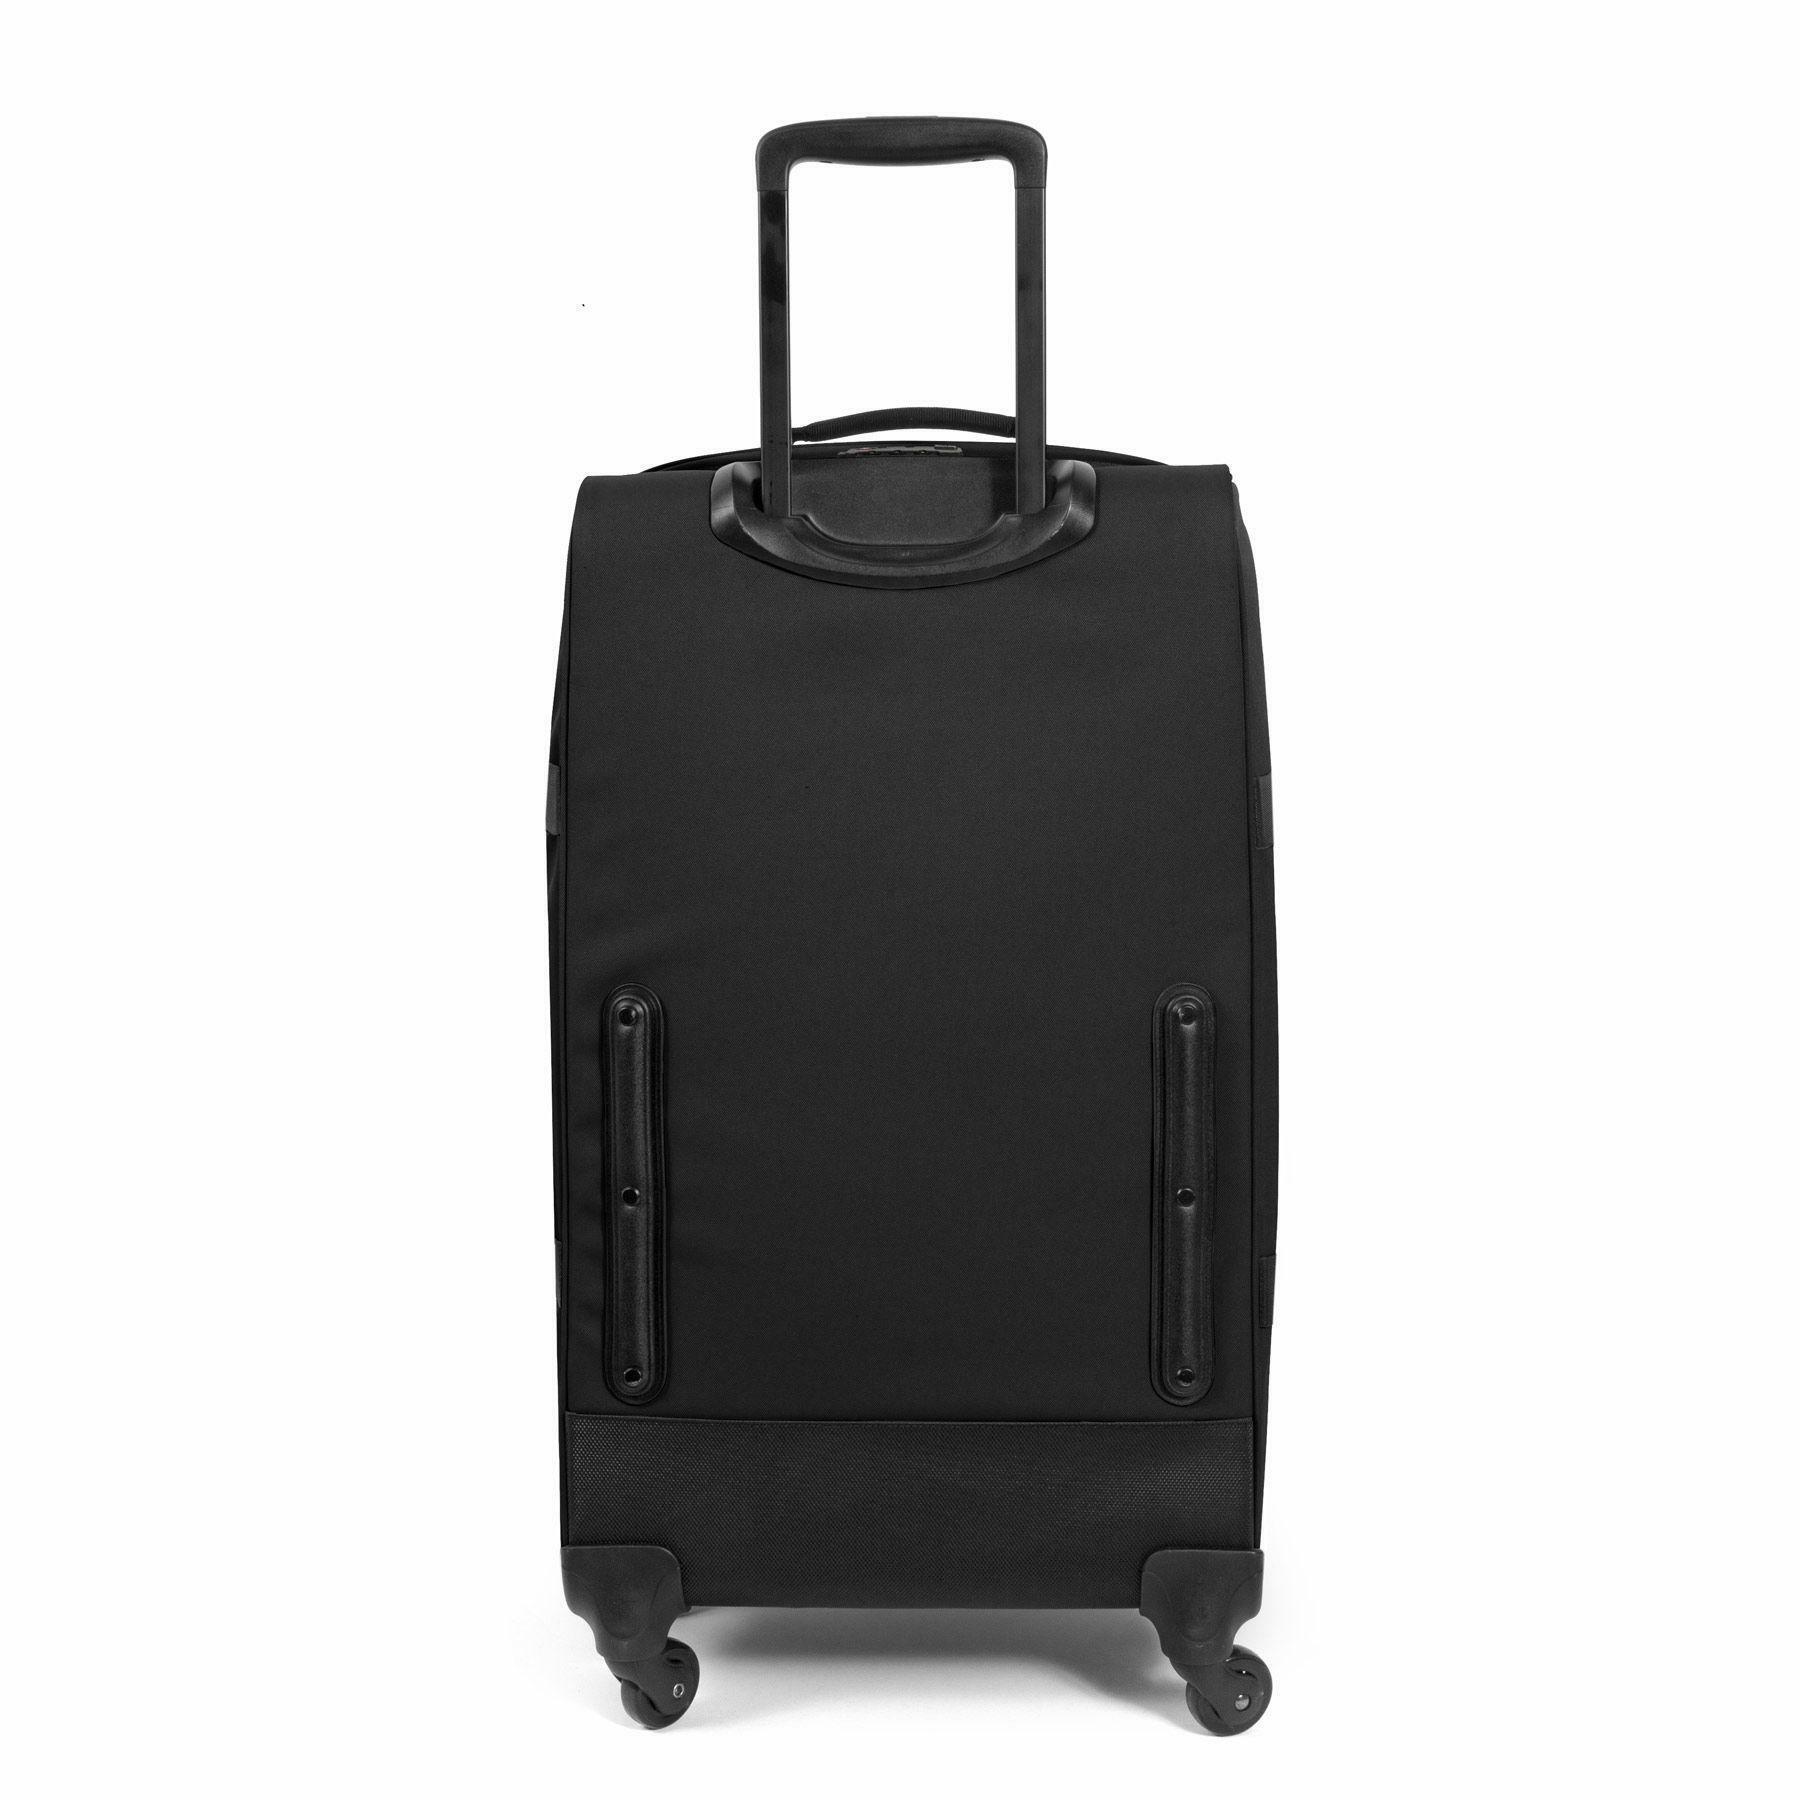 eastpak eastpak trolley medio ek81l nero